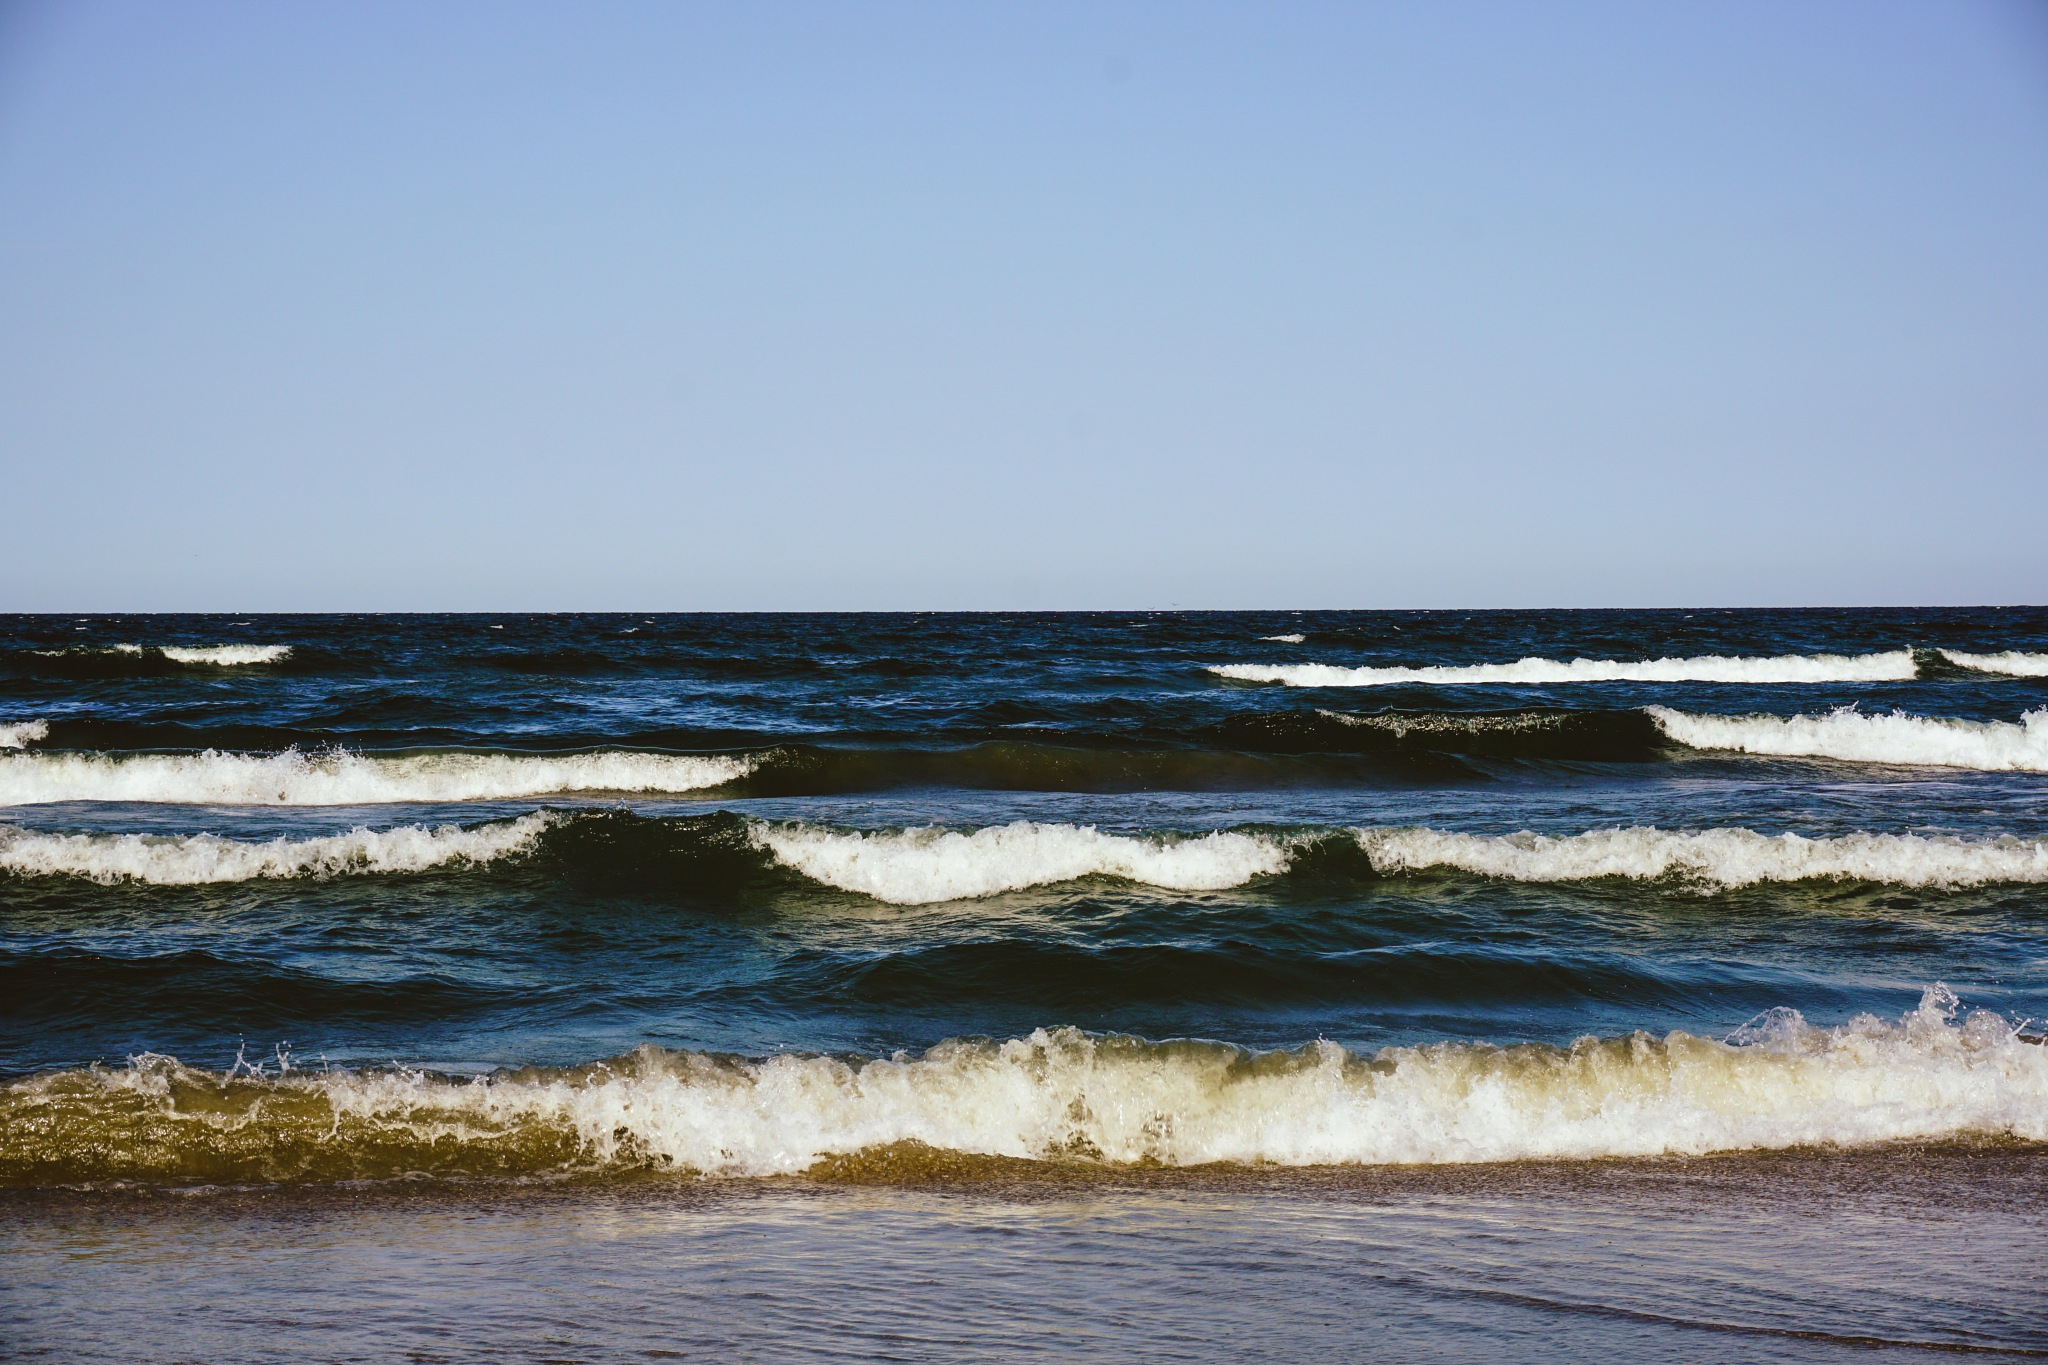 Waves by Costin0509